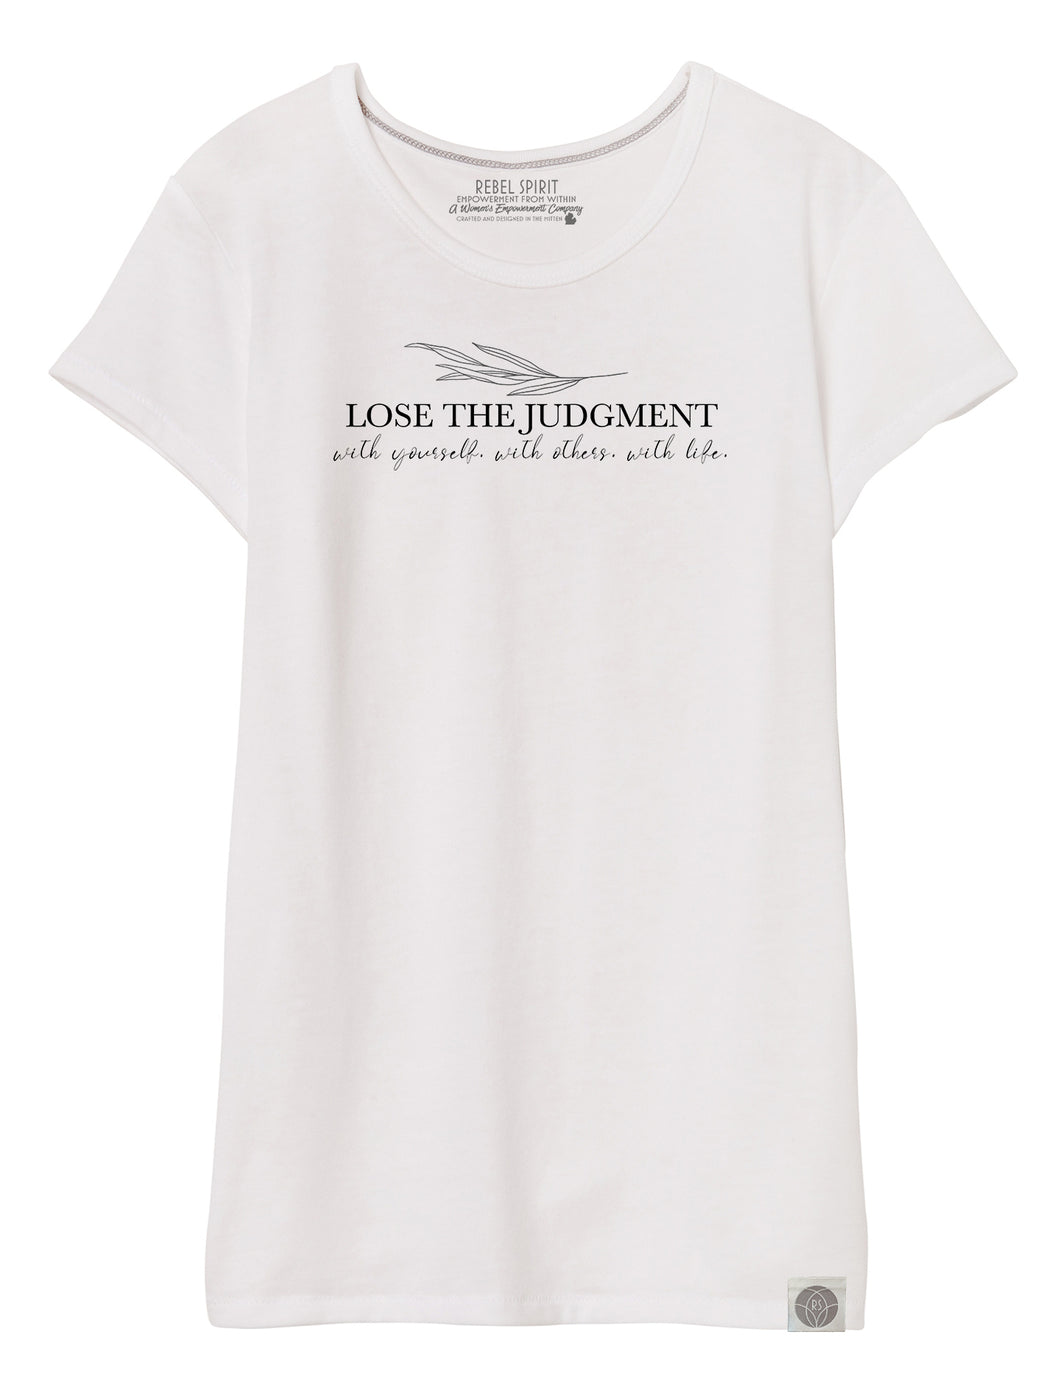 Lose the Judgment Perfect Summer Tee